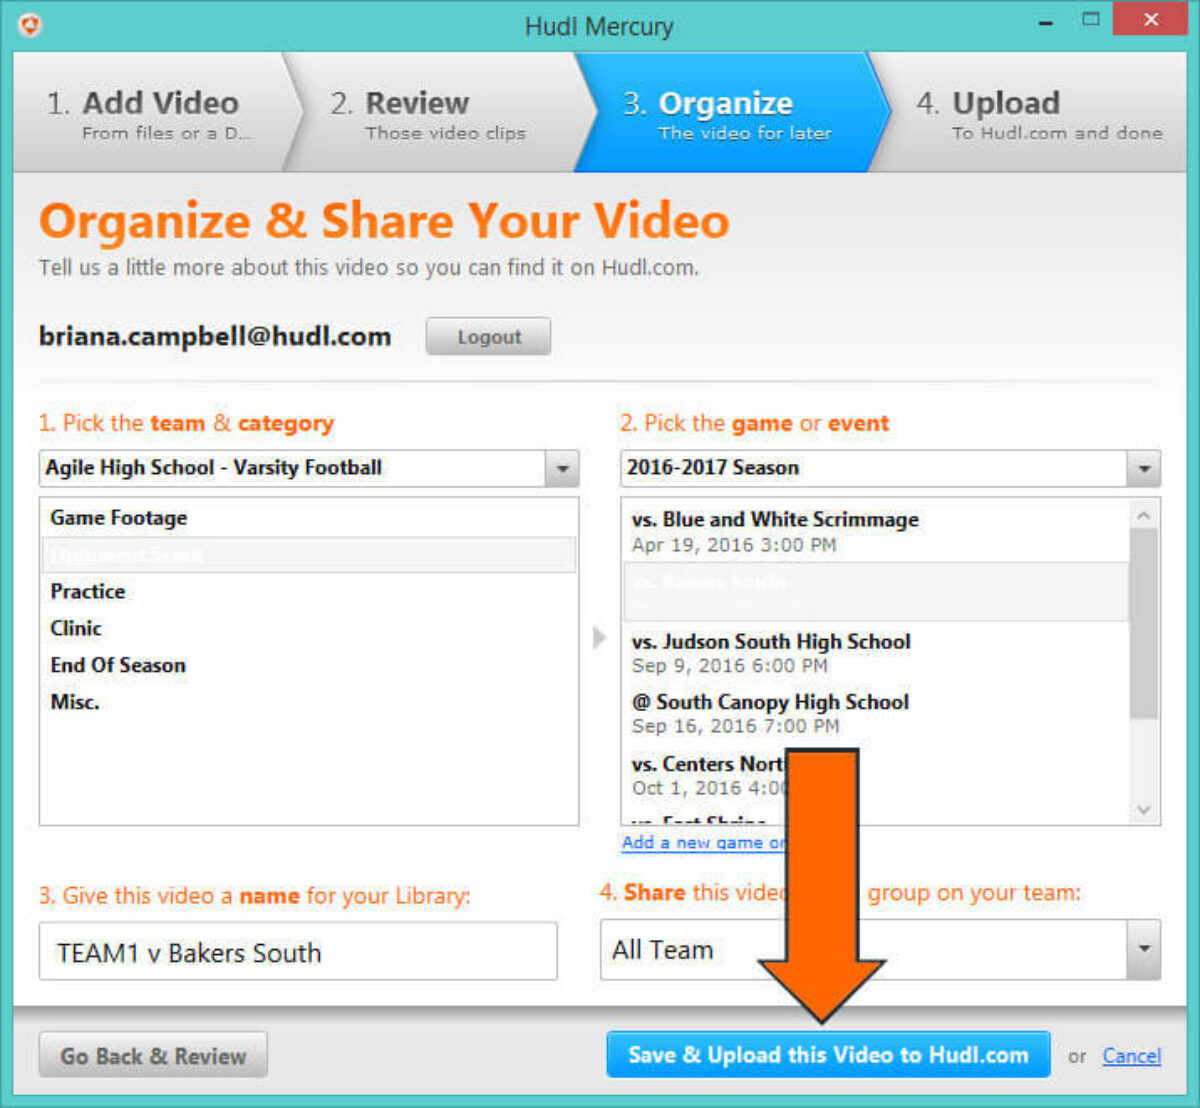 how to Download Hudl Mercury to Upload Video - Click Save & Upload this Video to Hudl​.com.